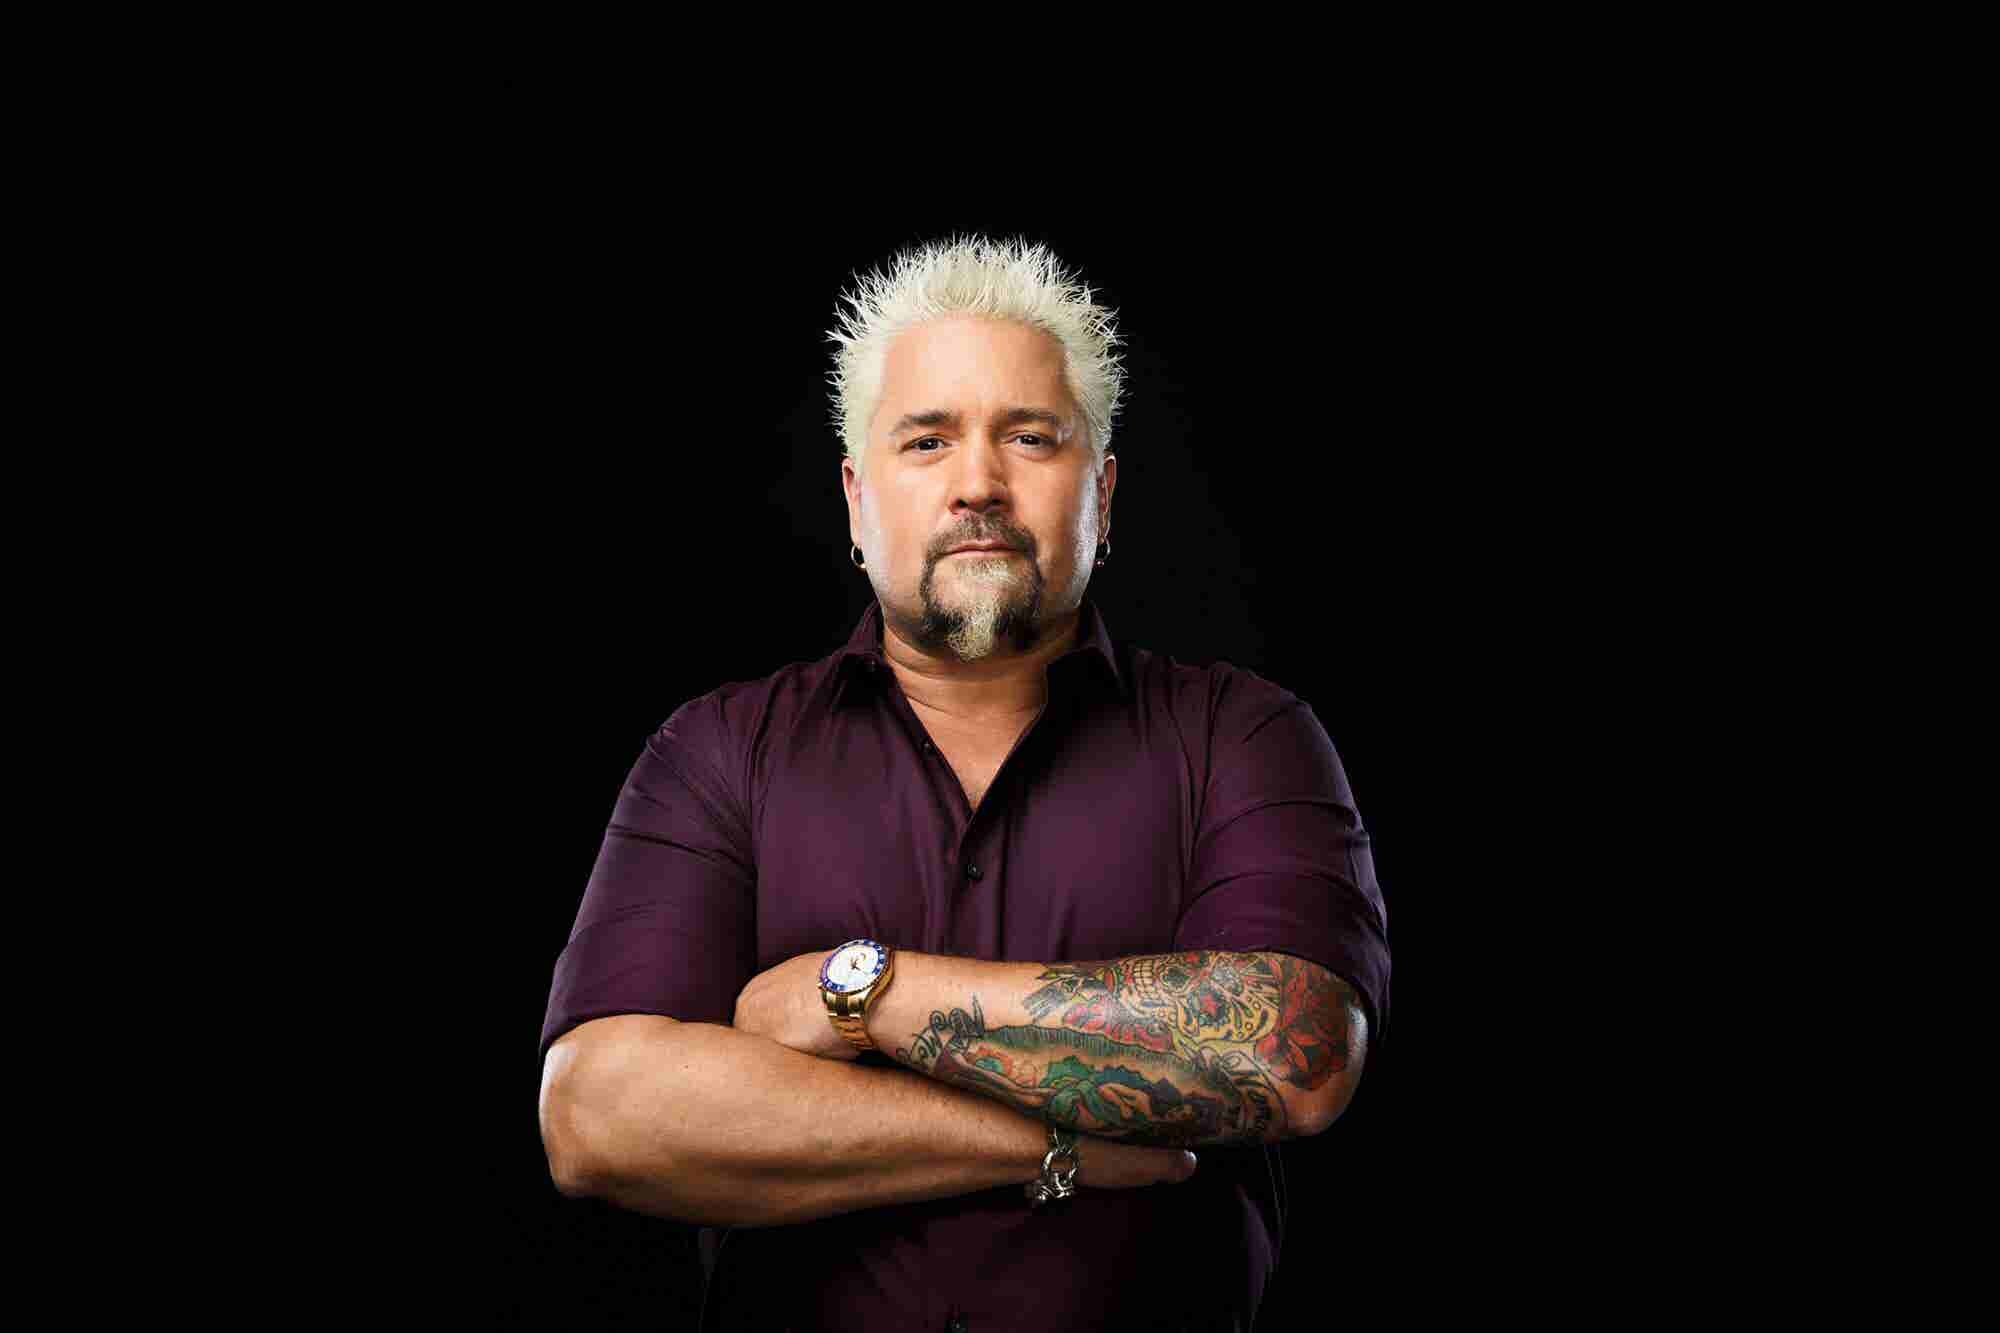 Guy Fieri Is Insanely Busy. Here's How He Gets It All Done.